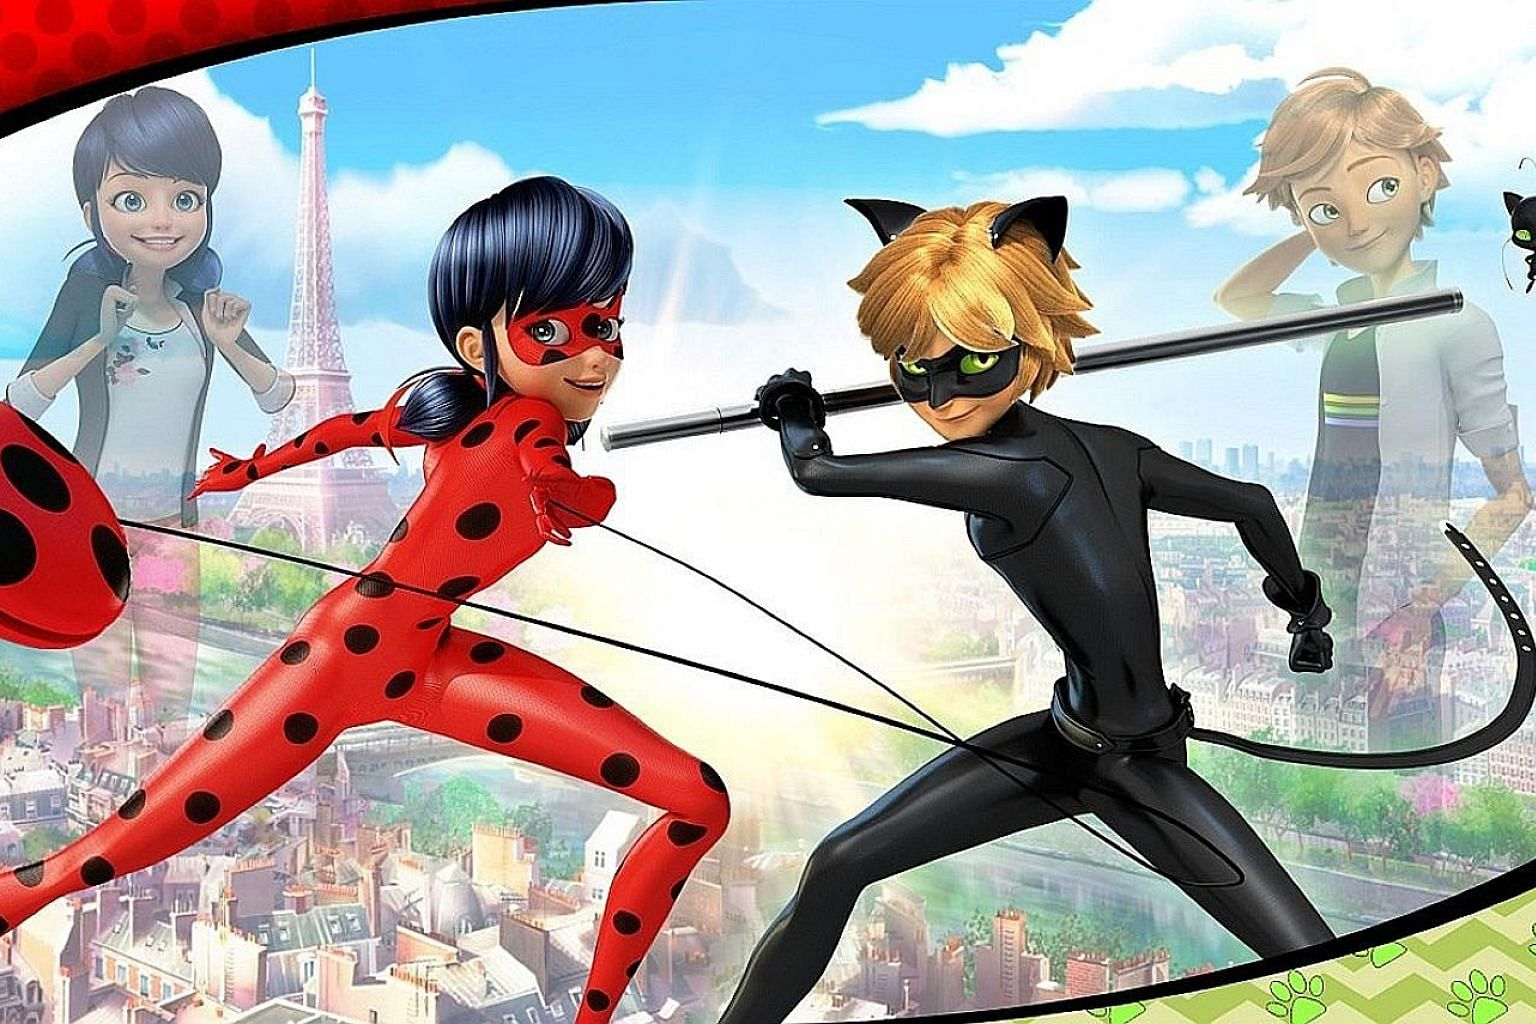 Animated series Miraculous: Tales Of Ladybug & Cat Noir (left) centres on two teenage protagonists Marinette Dupain-Cheng and Adrien Agreste, who also double as superheroes.